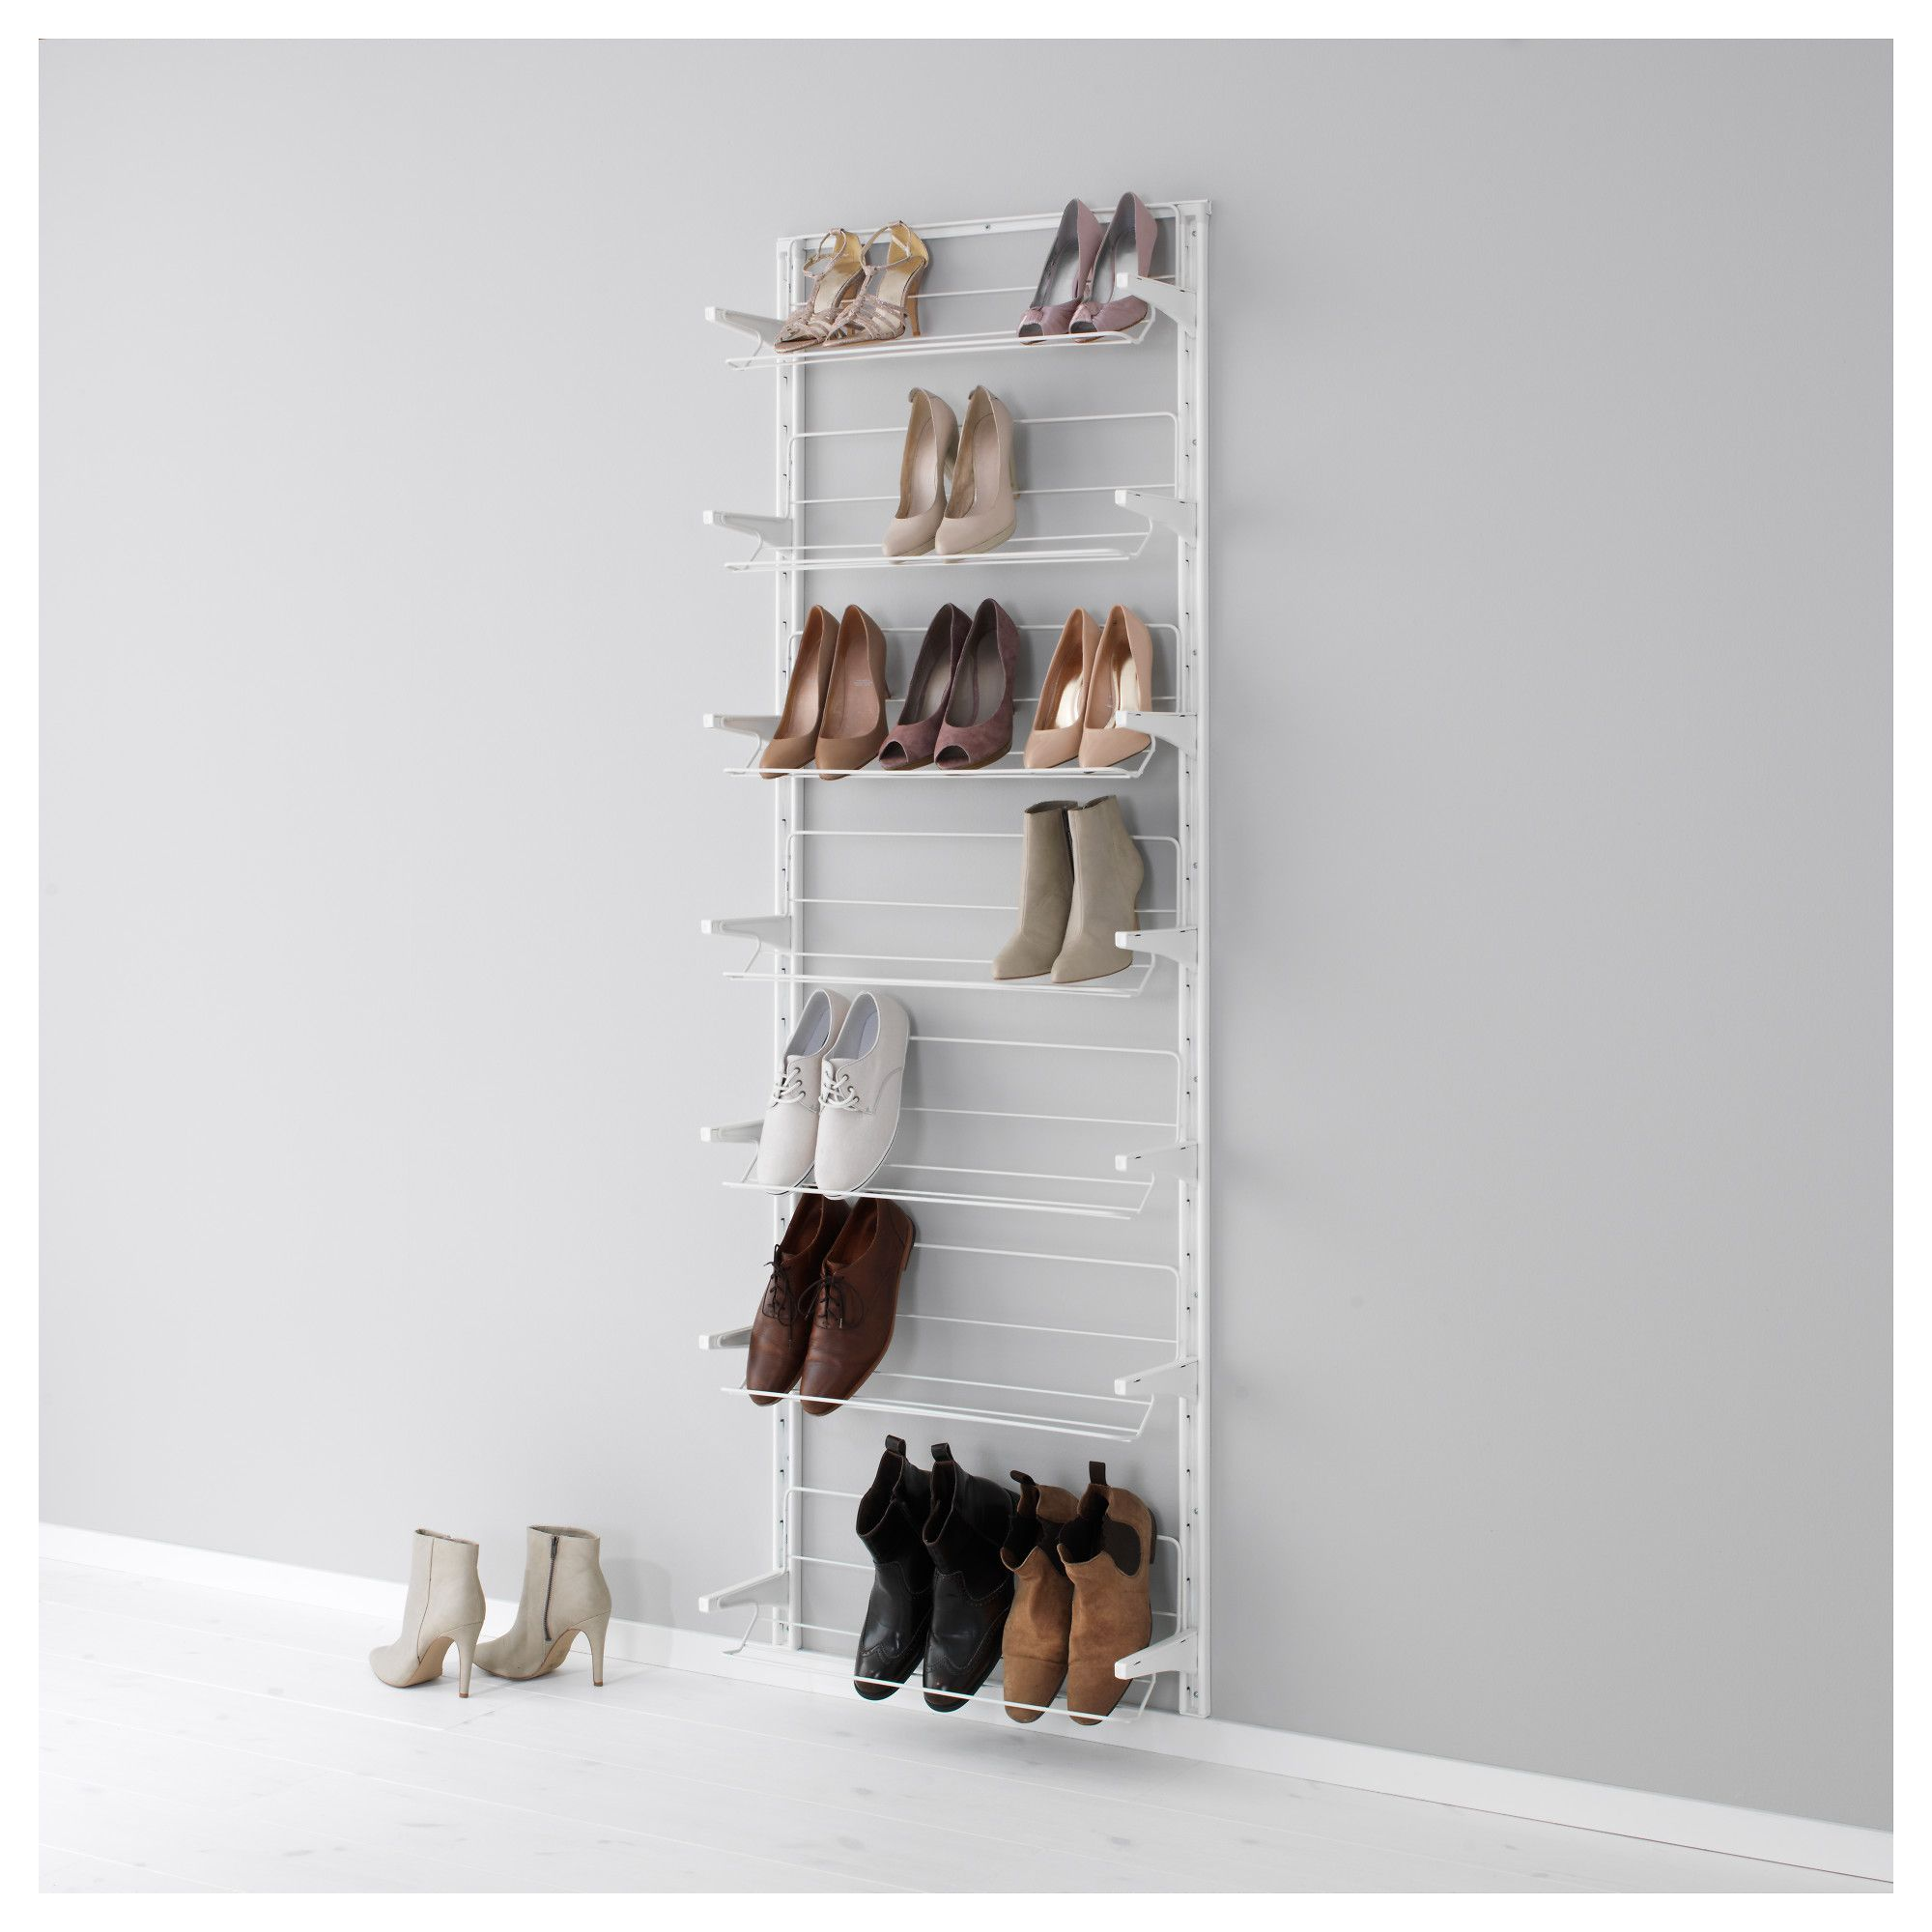 ALGOT Wall upright shoe organizer white